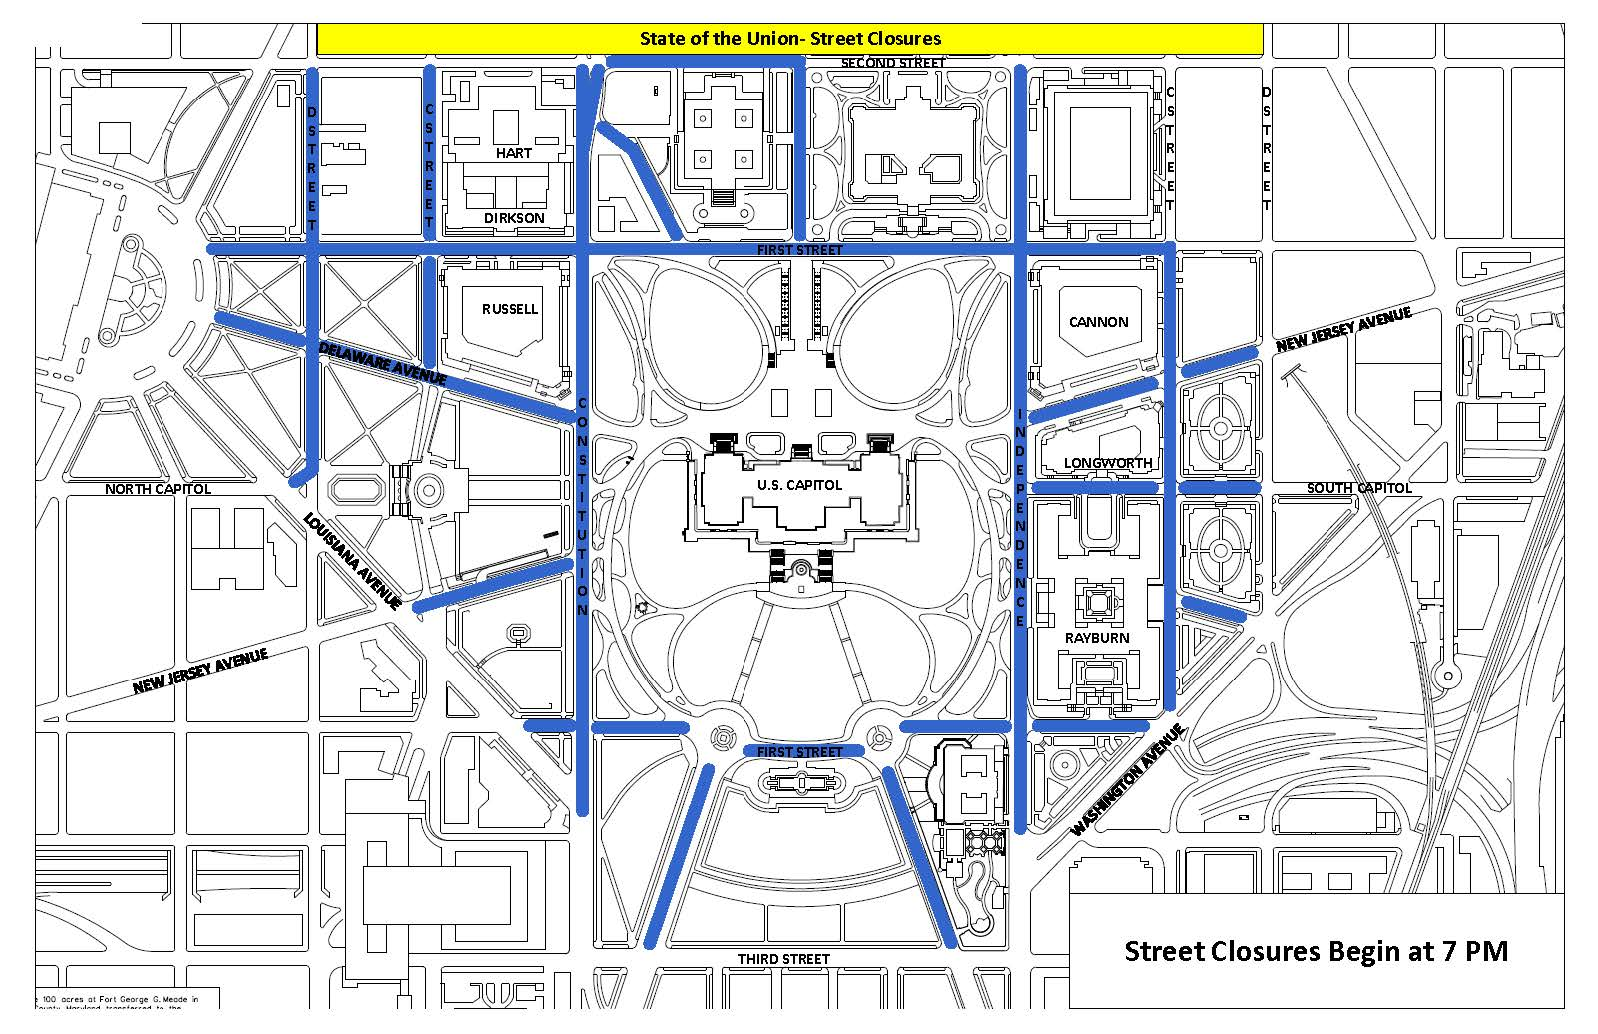 Map of street closures for the 2020 State of the Union Address.